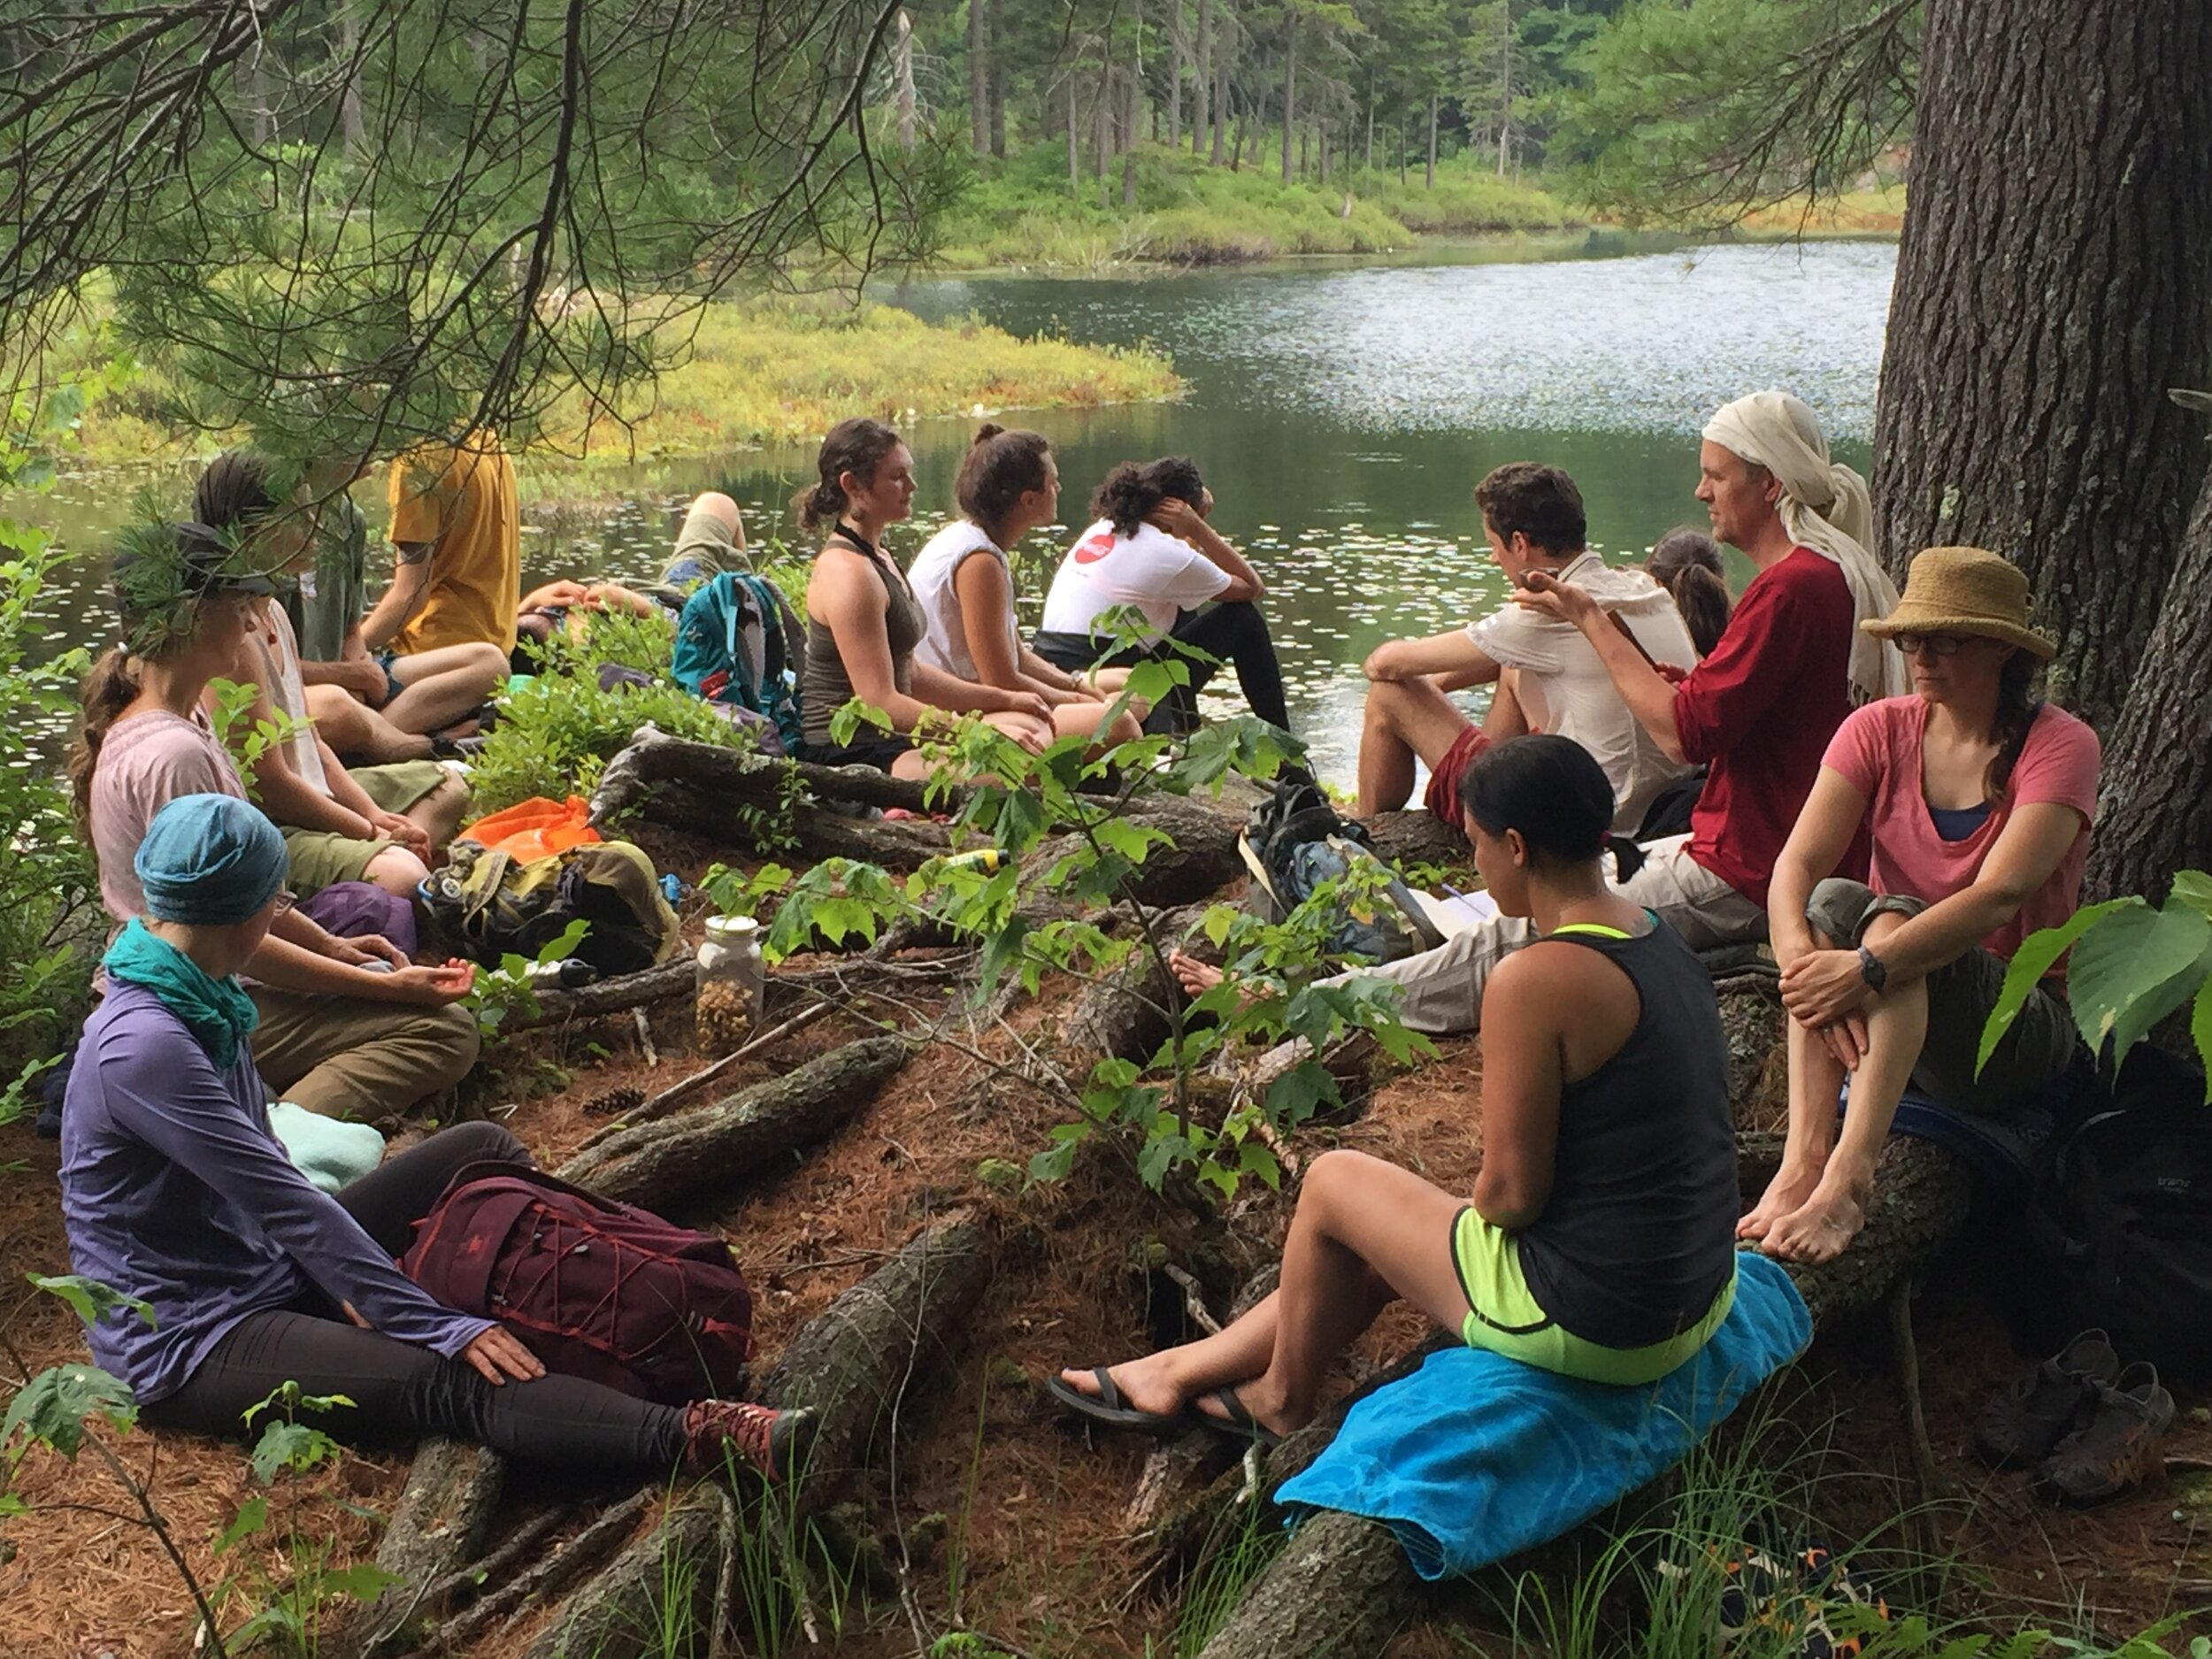 Practicing sitting meditation during a group hike.